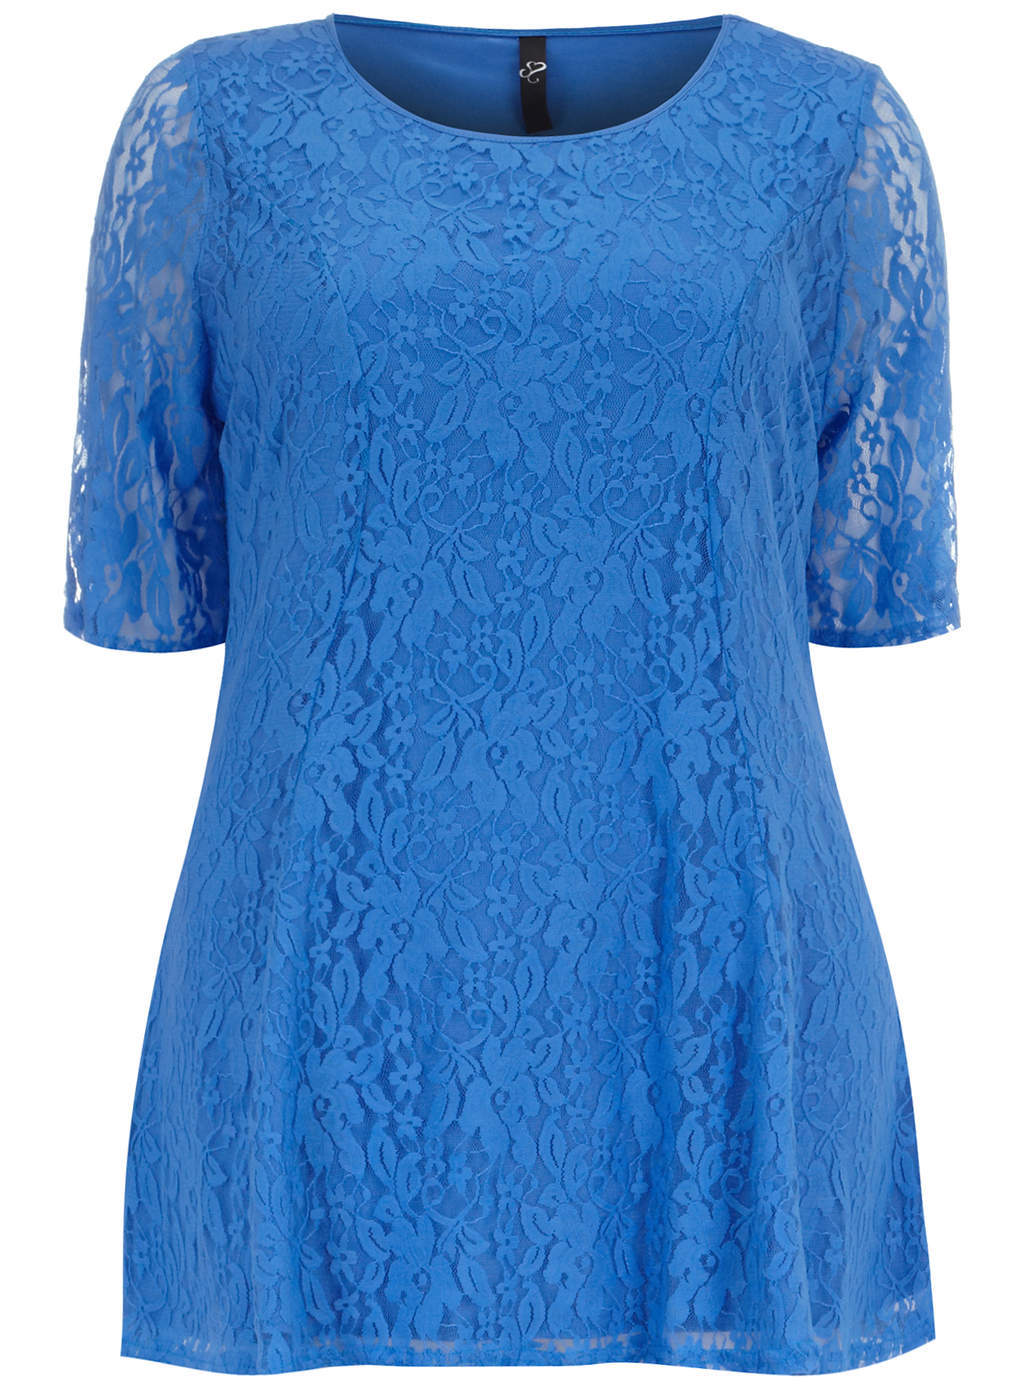 Blue Busty Lace Top - neckline: round neck; length: below the bottom; predominant colour: diva blue; occasions: casual, evening, creative work; style: top; fibres: nylon - mix; fit: loose; sleeve length: half sleeve; sleeve style: standard; texture group: lace; pattern: patterned/print; trends: hot brights, lace; season: s/s 2014